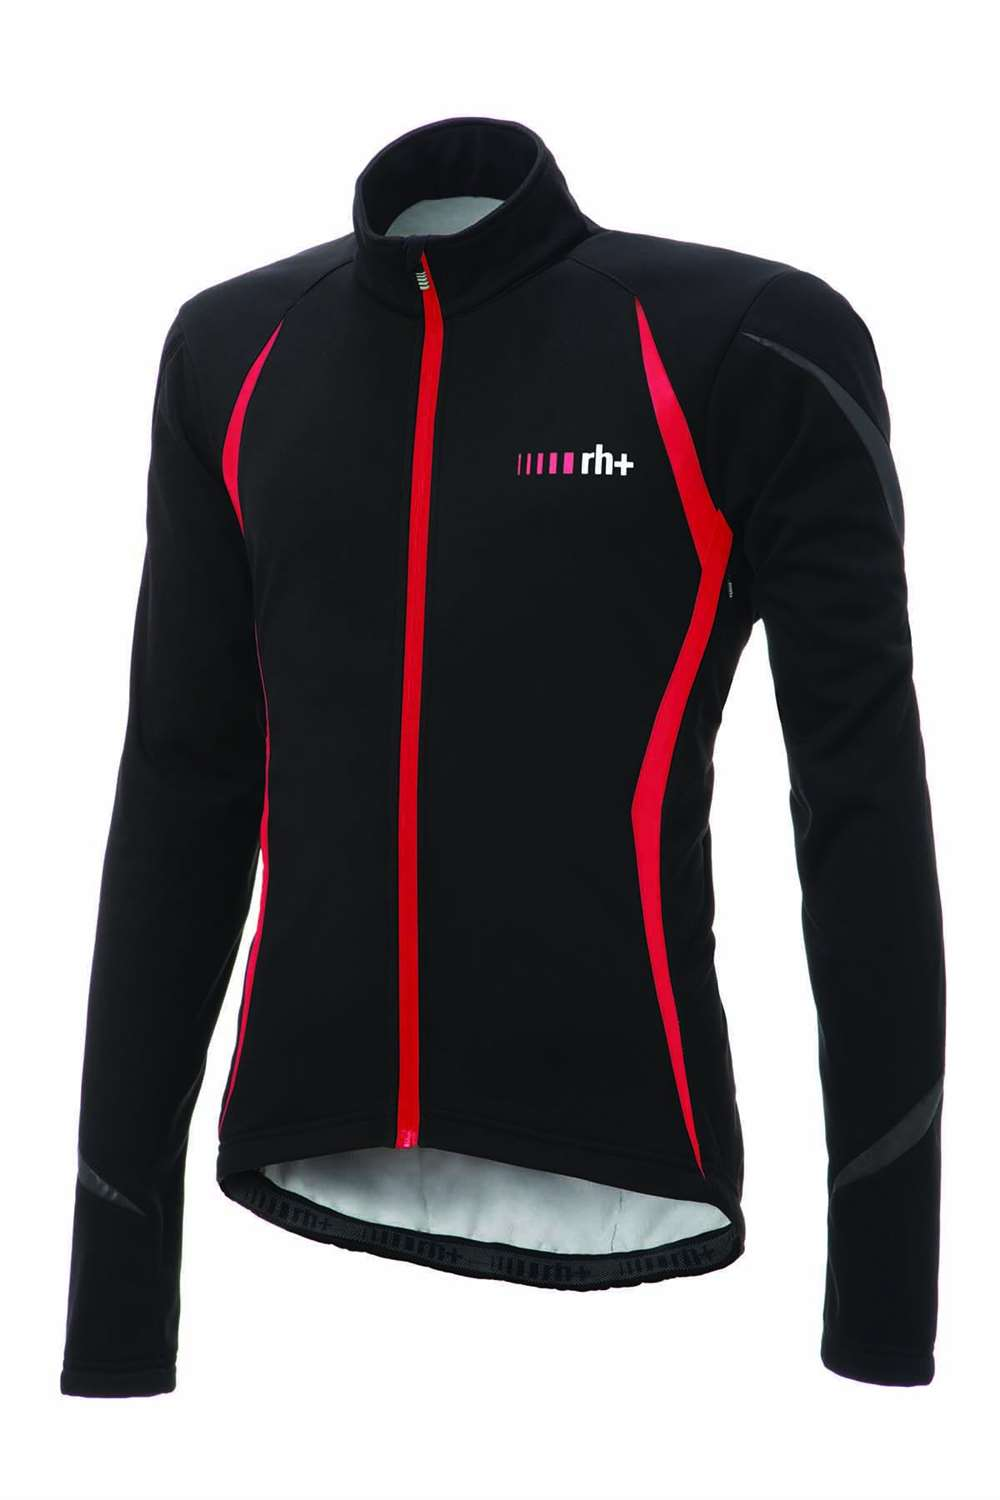 RH+ FLASH JACKET BLACK RED REFLEX